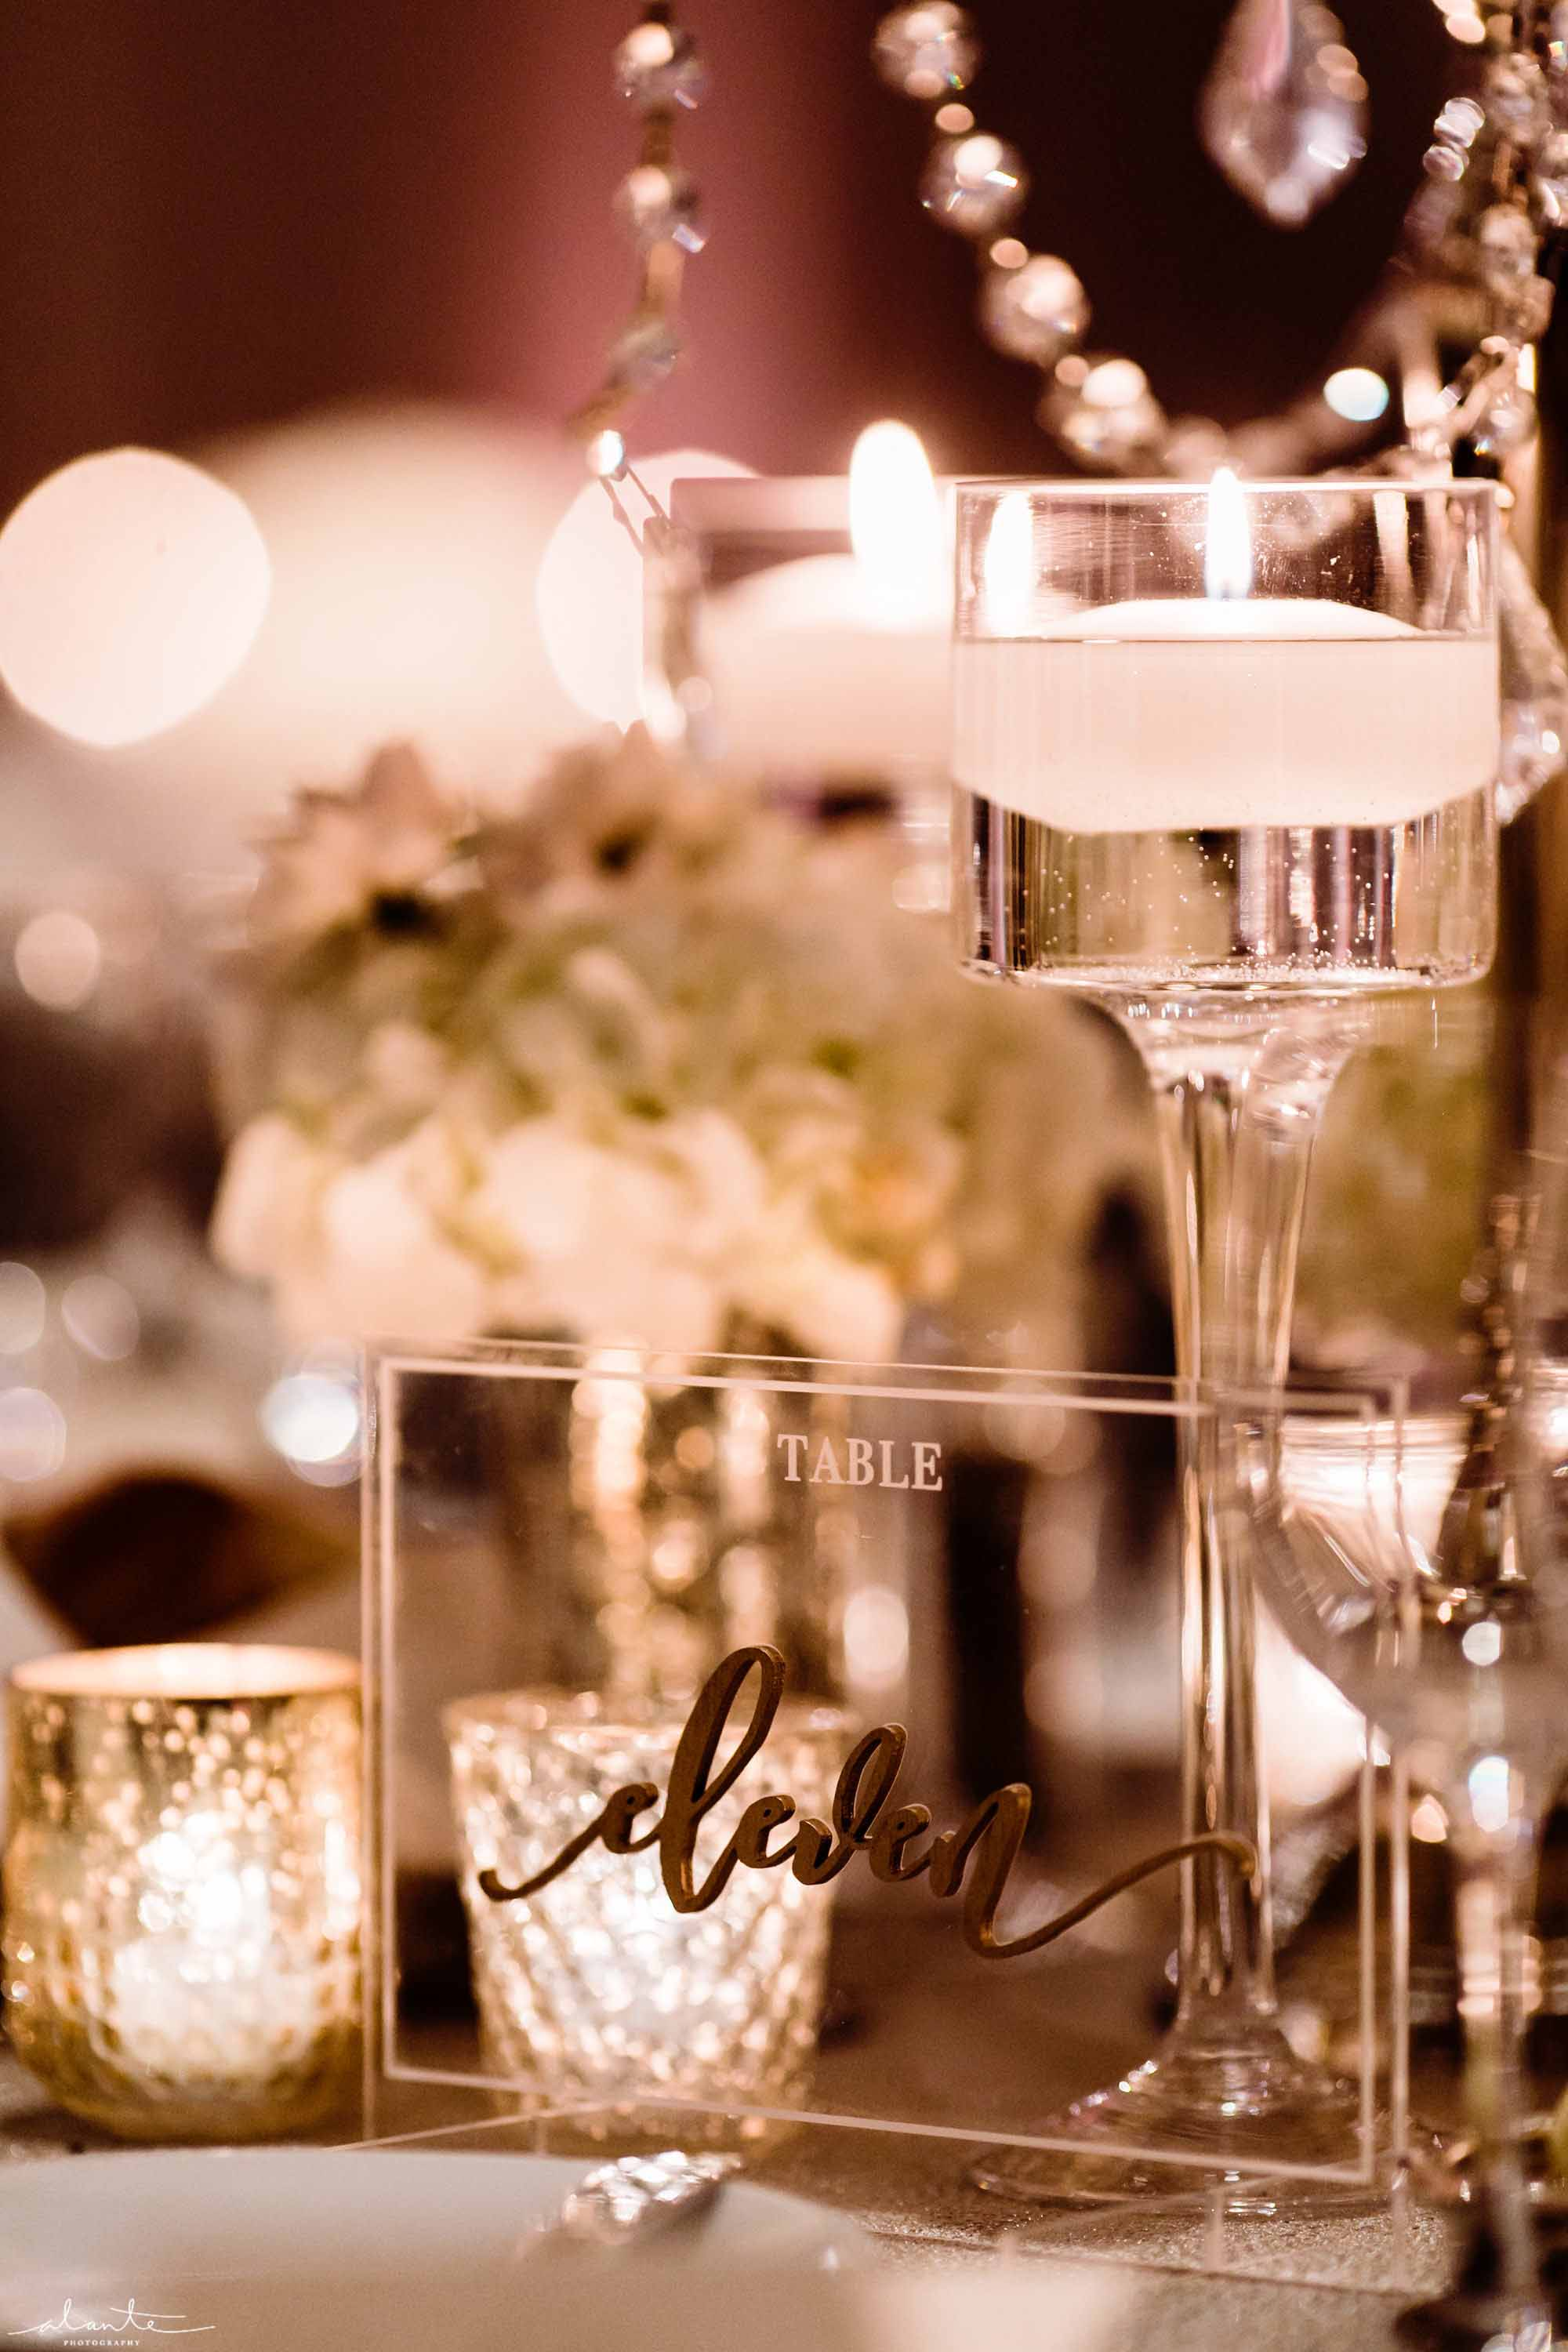 Floating candles and votive candles and lucite table number - Luxury Winter Wedding at the Four Seasons by Flora Nova Design Seattle